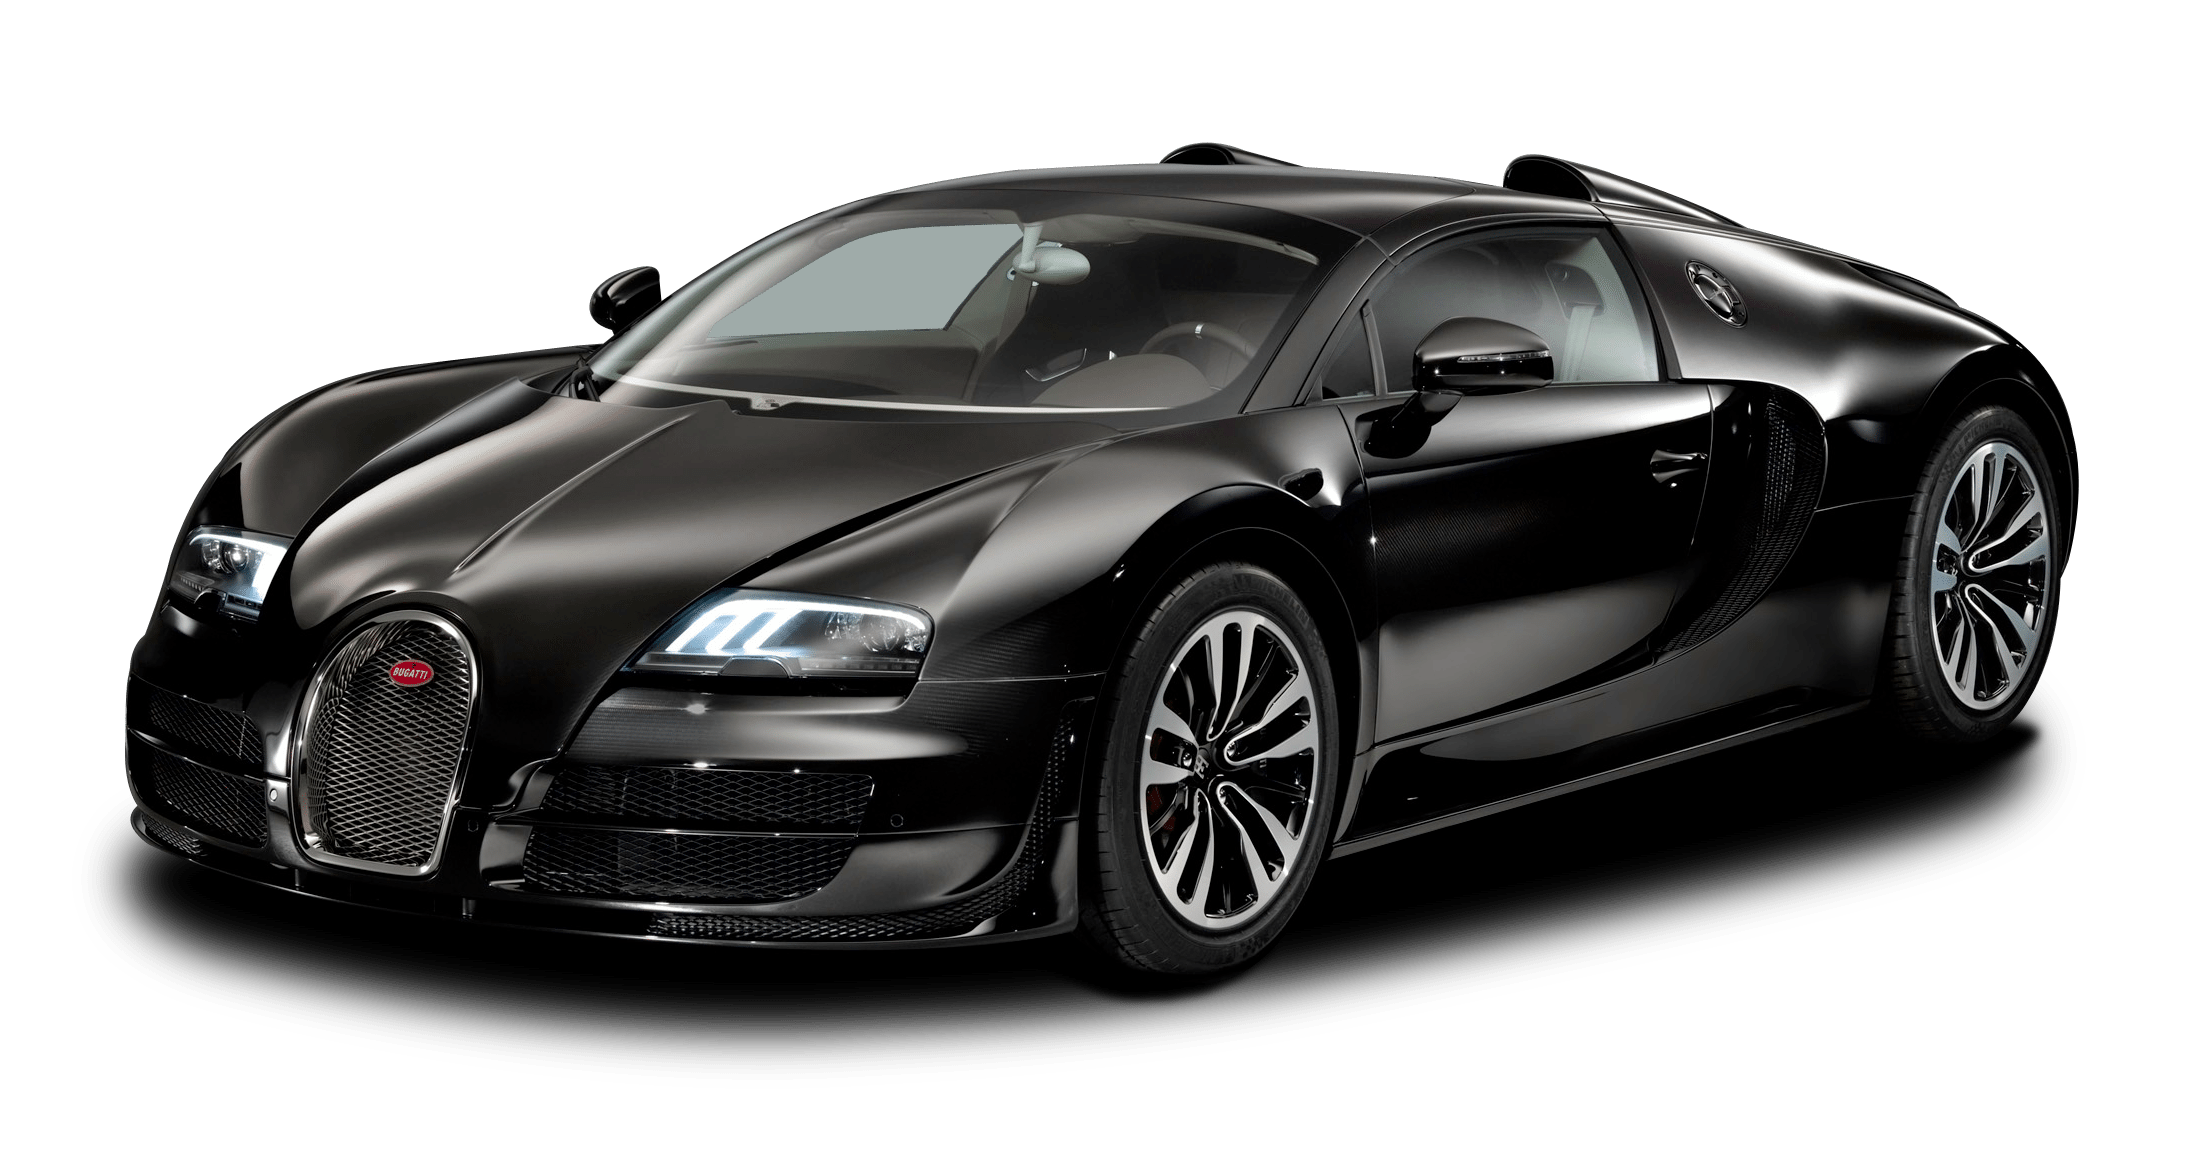 2018 Bugatti Veyron Prices Specifications In Uae Dubai Abu Dhabi